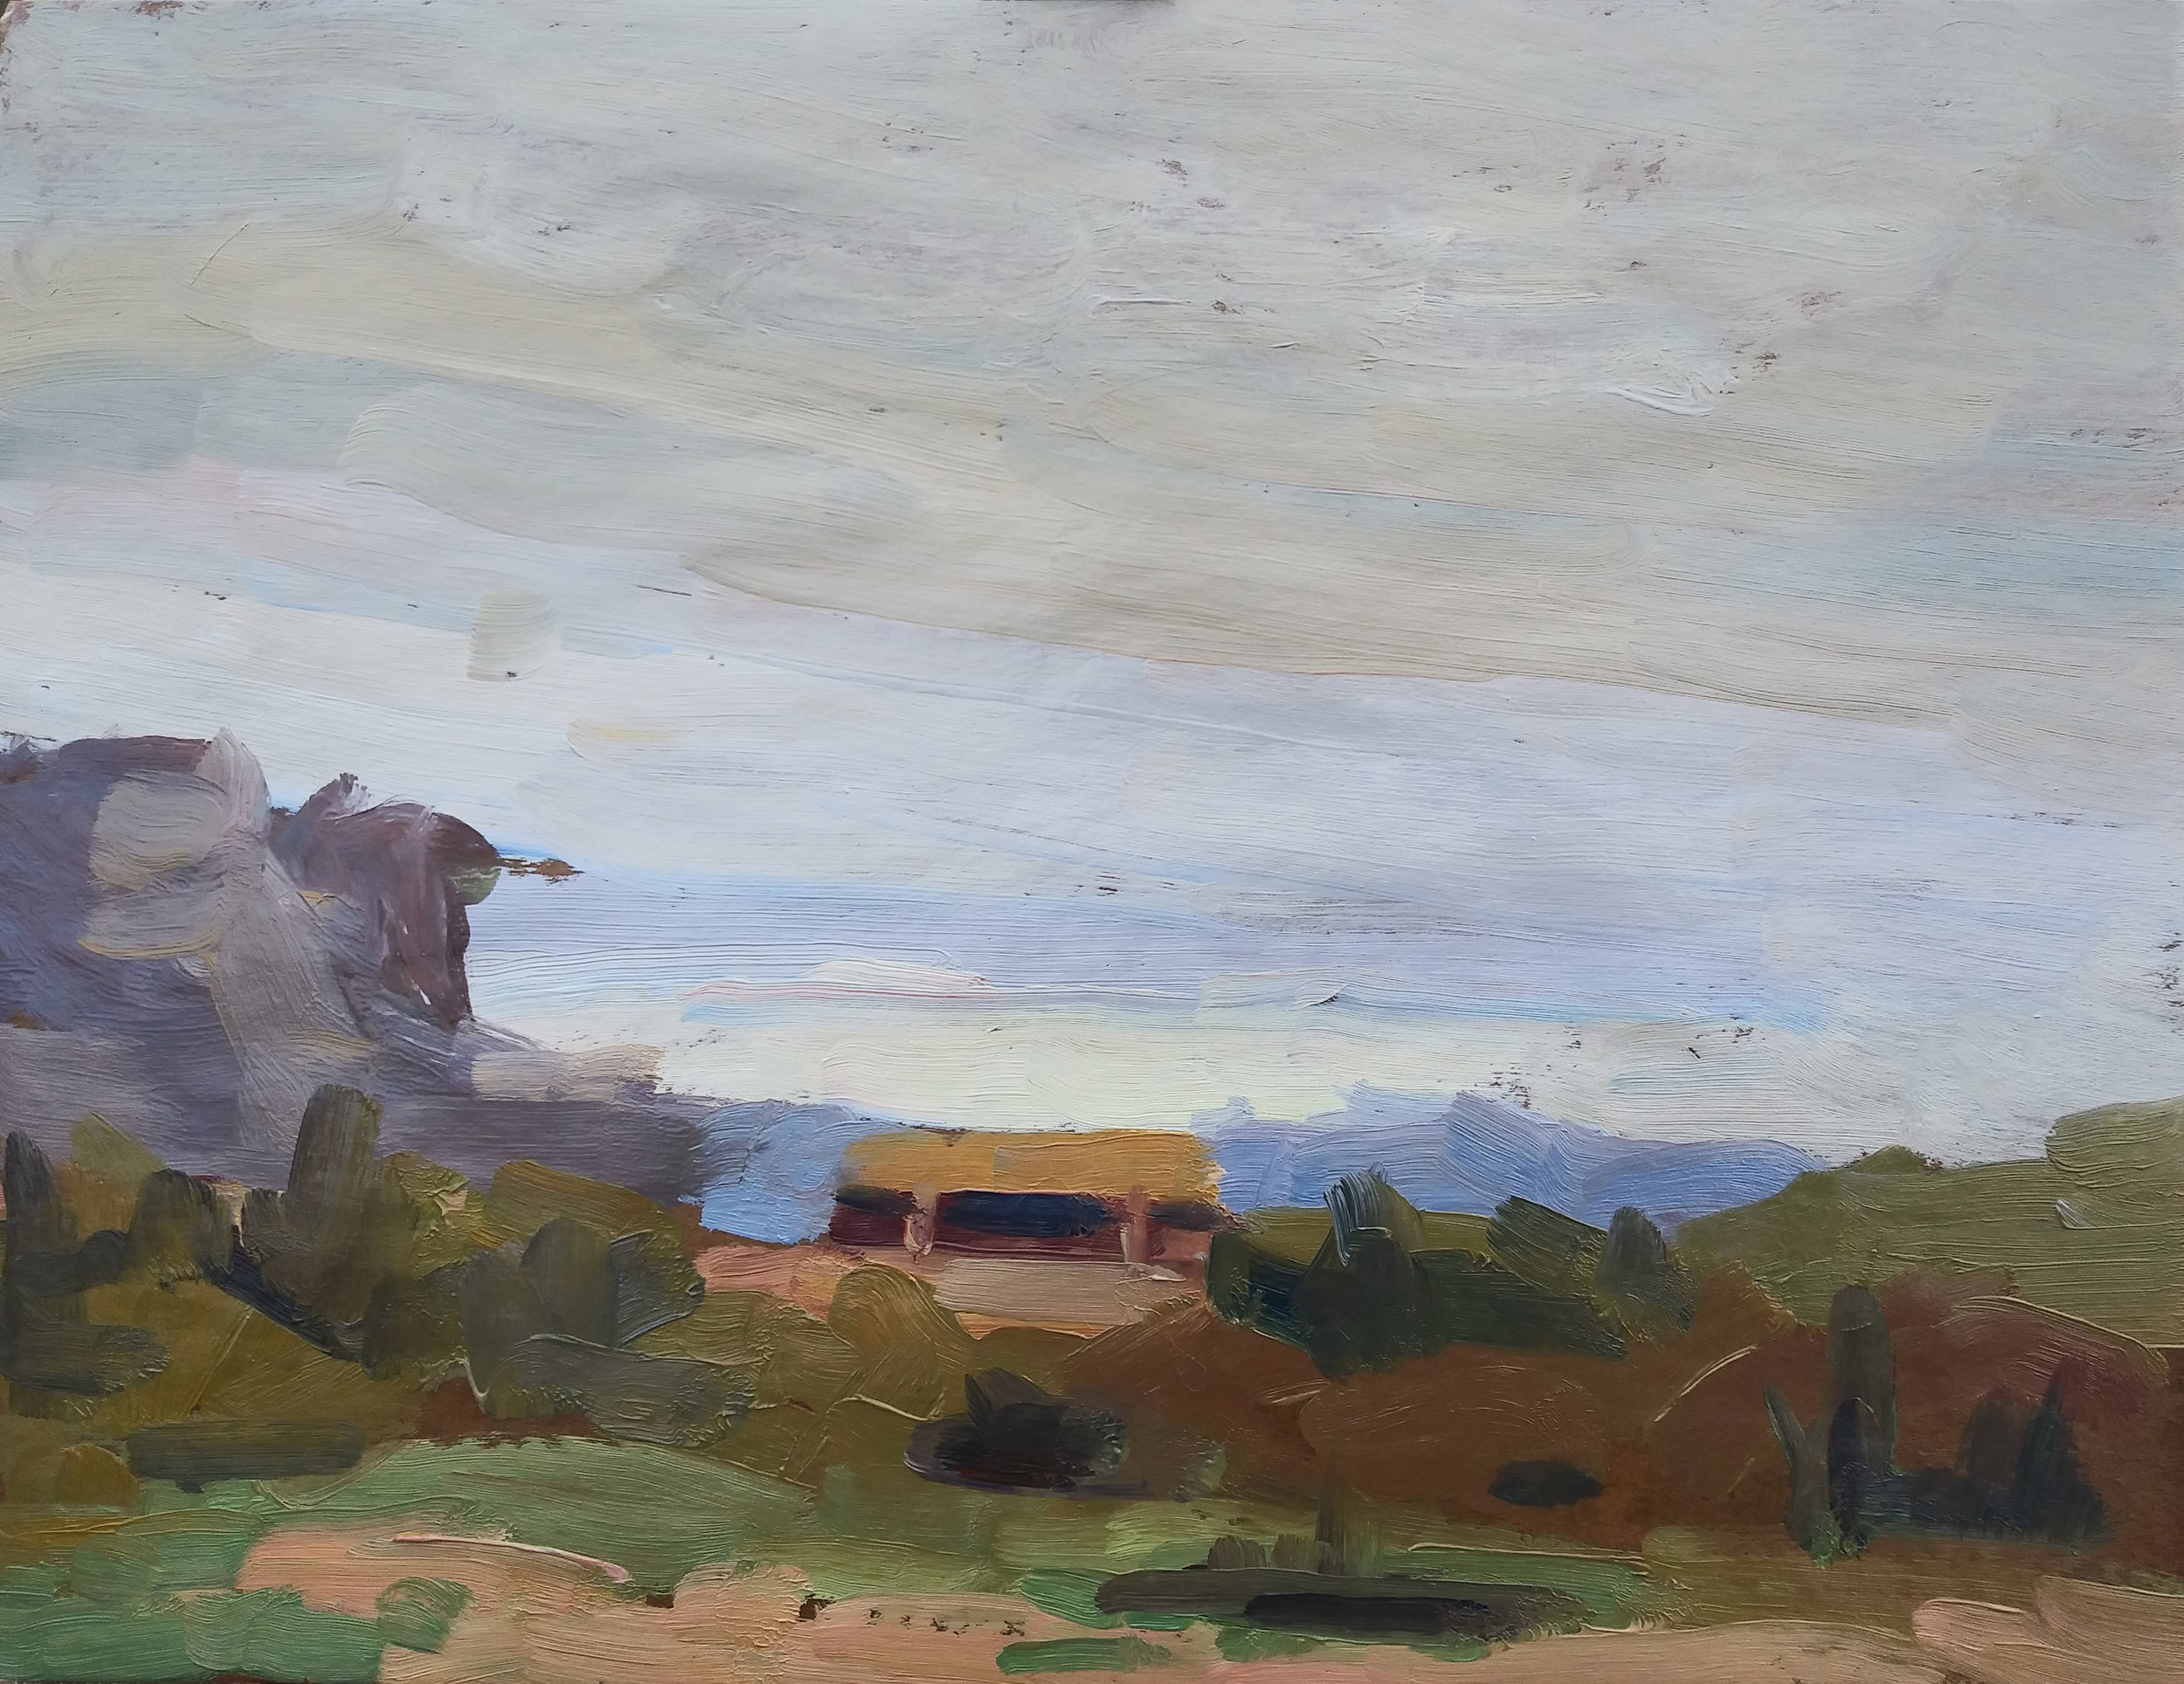 The third sketch from my first day here, done near sunset on one of those rare overcast days Arizona features.